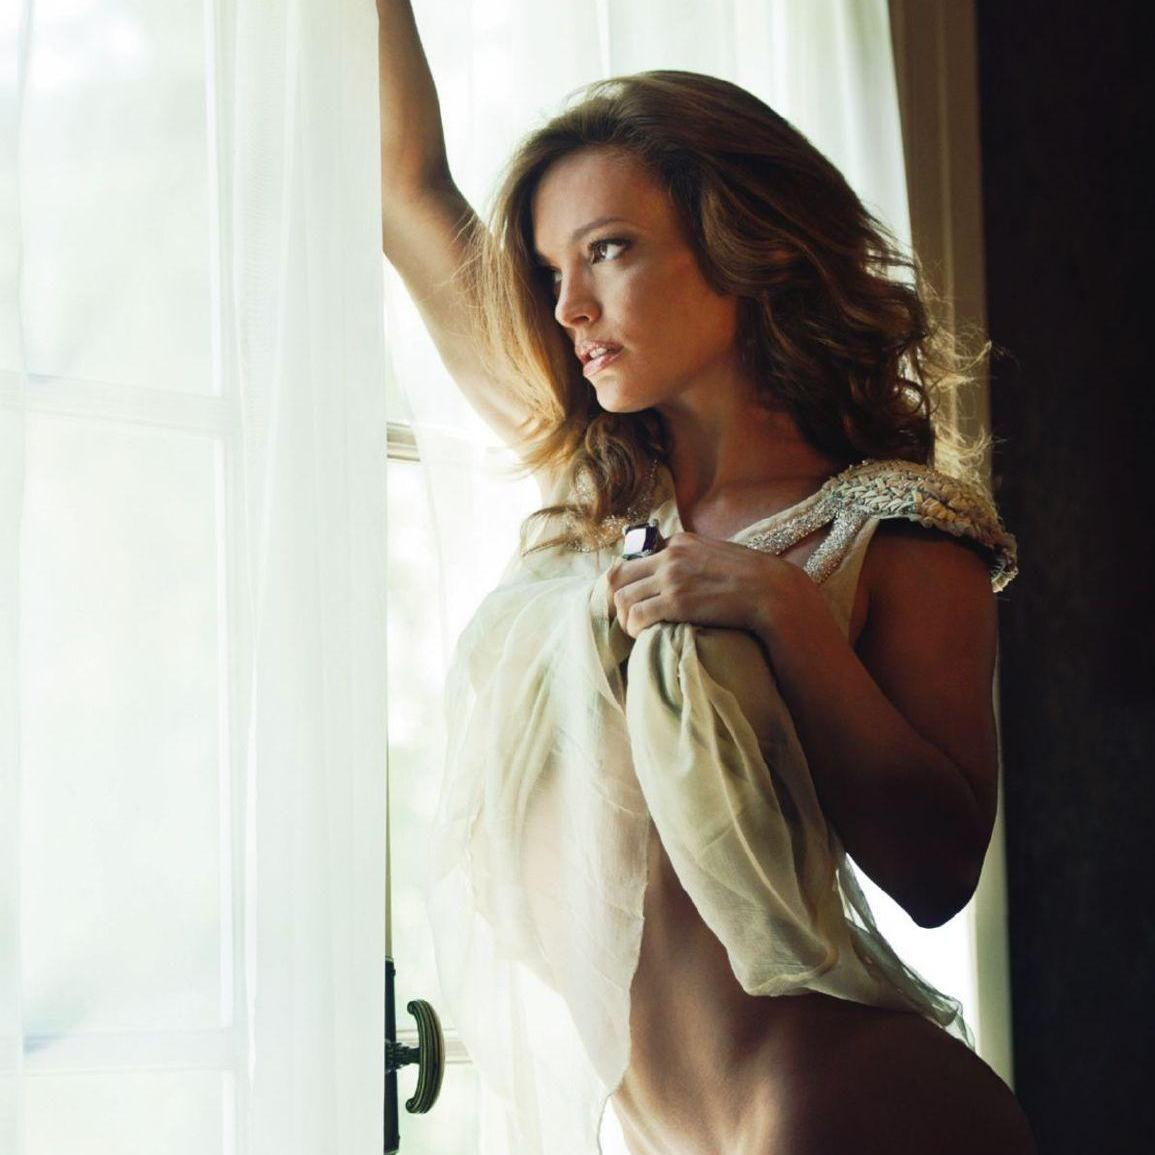 3 Argentinas en Playboy (fotos + video)